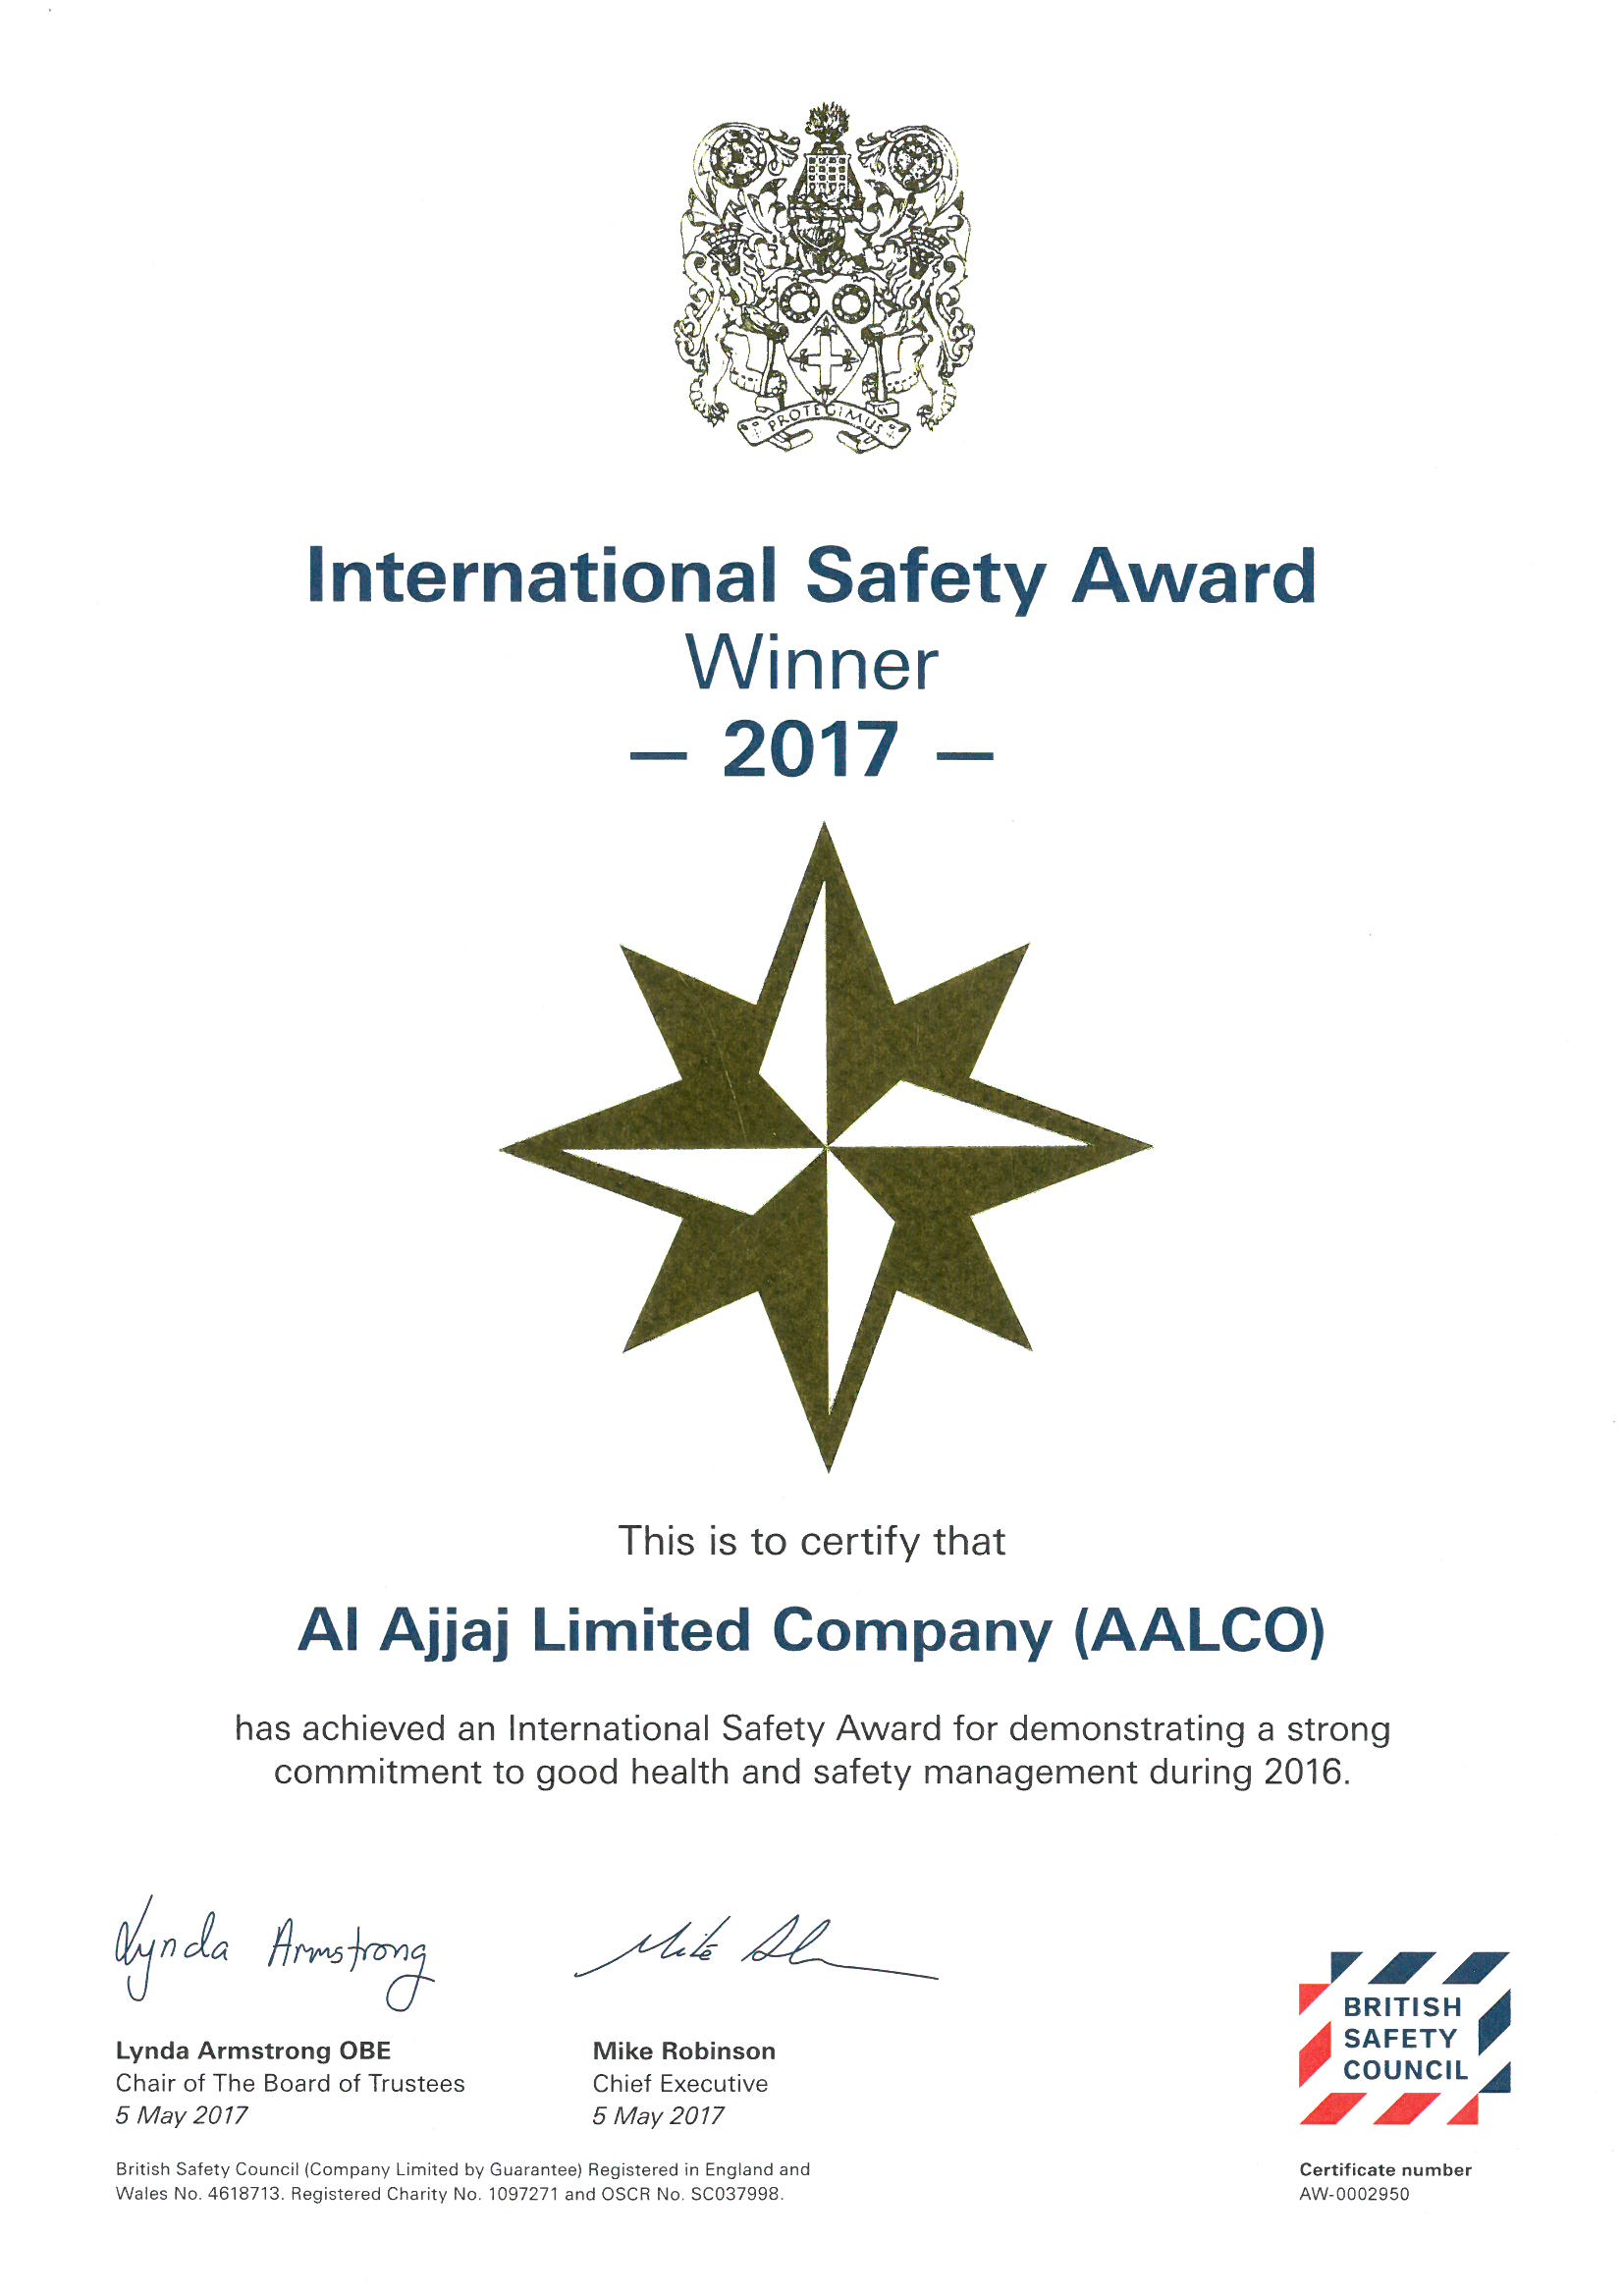 International Safety Award-2017